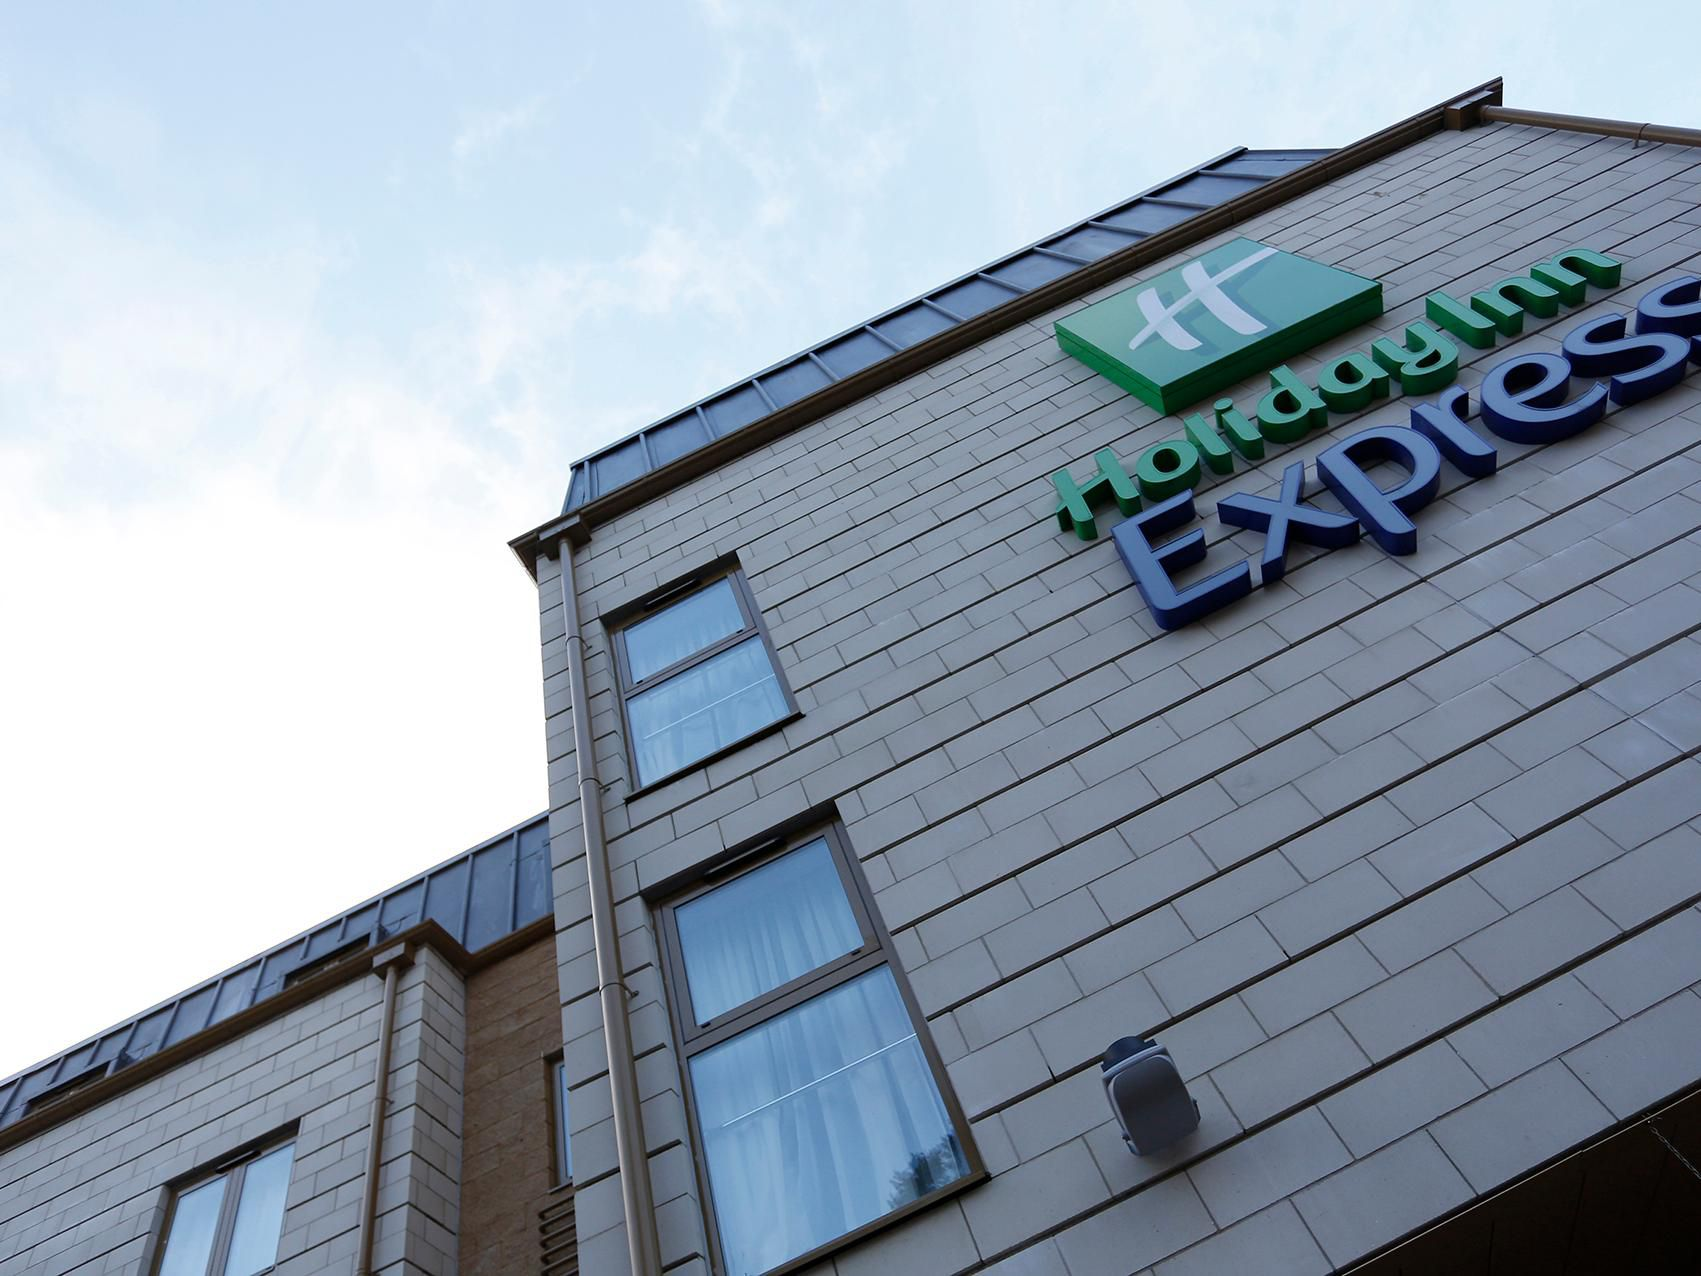 Welcome to the Holiday Inn Express Windsor hotel